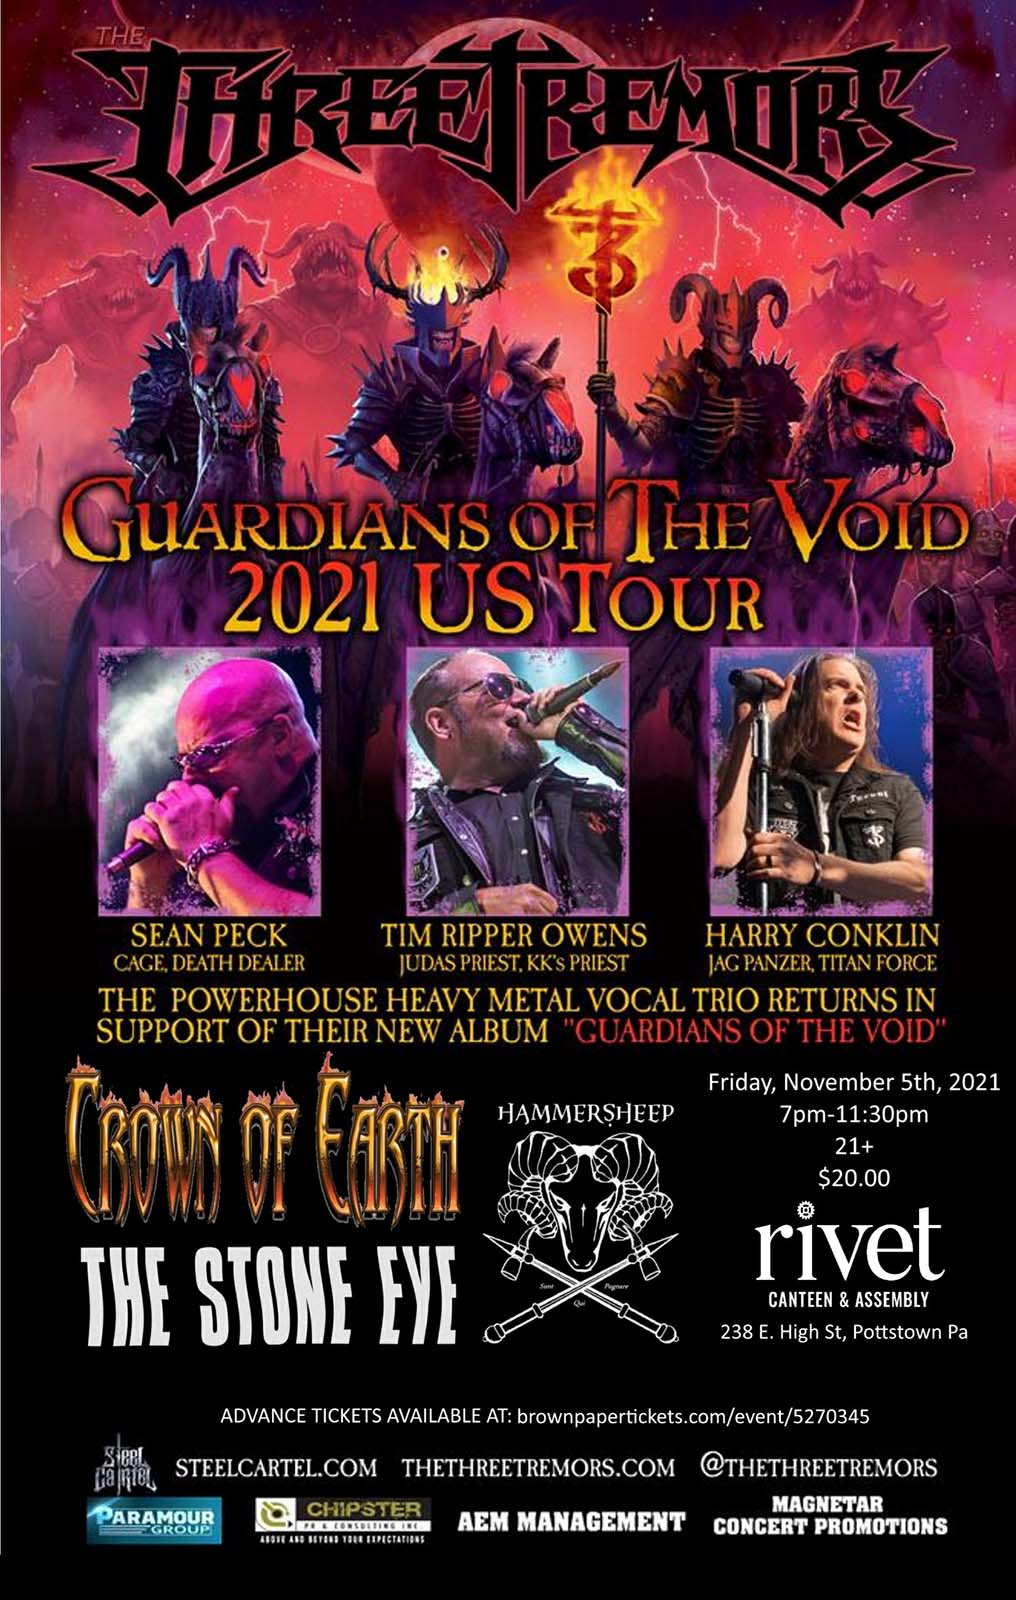 The Three Tremors: Guardians of The Voice 2021 US Tour Flyer. The band will be performing Live at Rivet: Canteen & Assembly in Pottstown, Pennsylvania on Friday, November 5th, starting at 7:30PM with bands Crown of Earth, Hammersheep, and The Stone Eye.